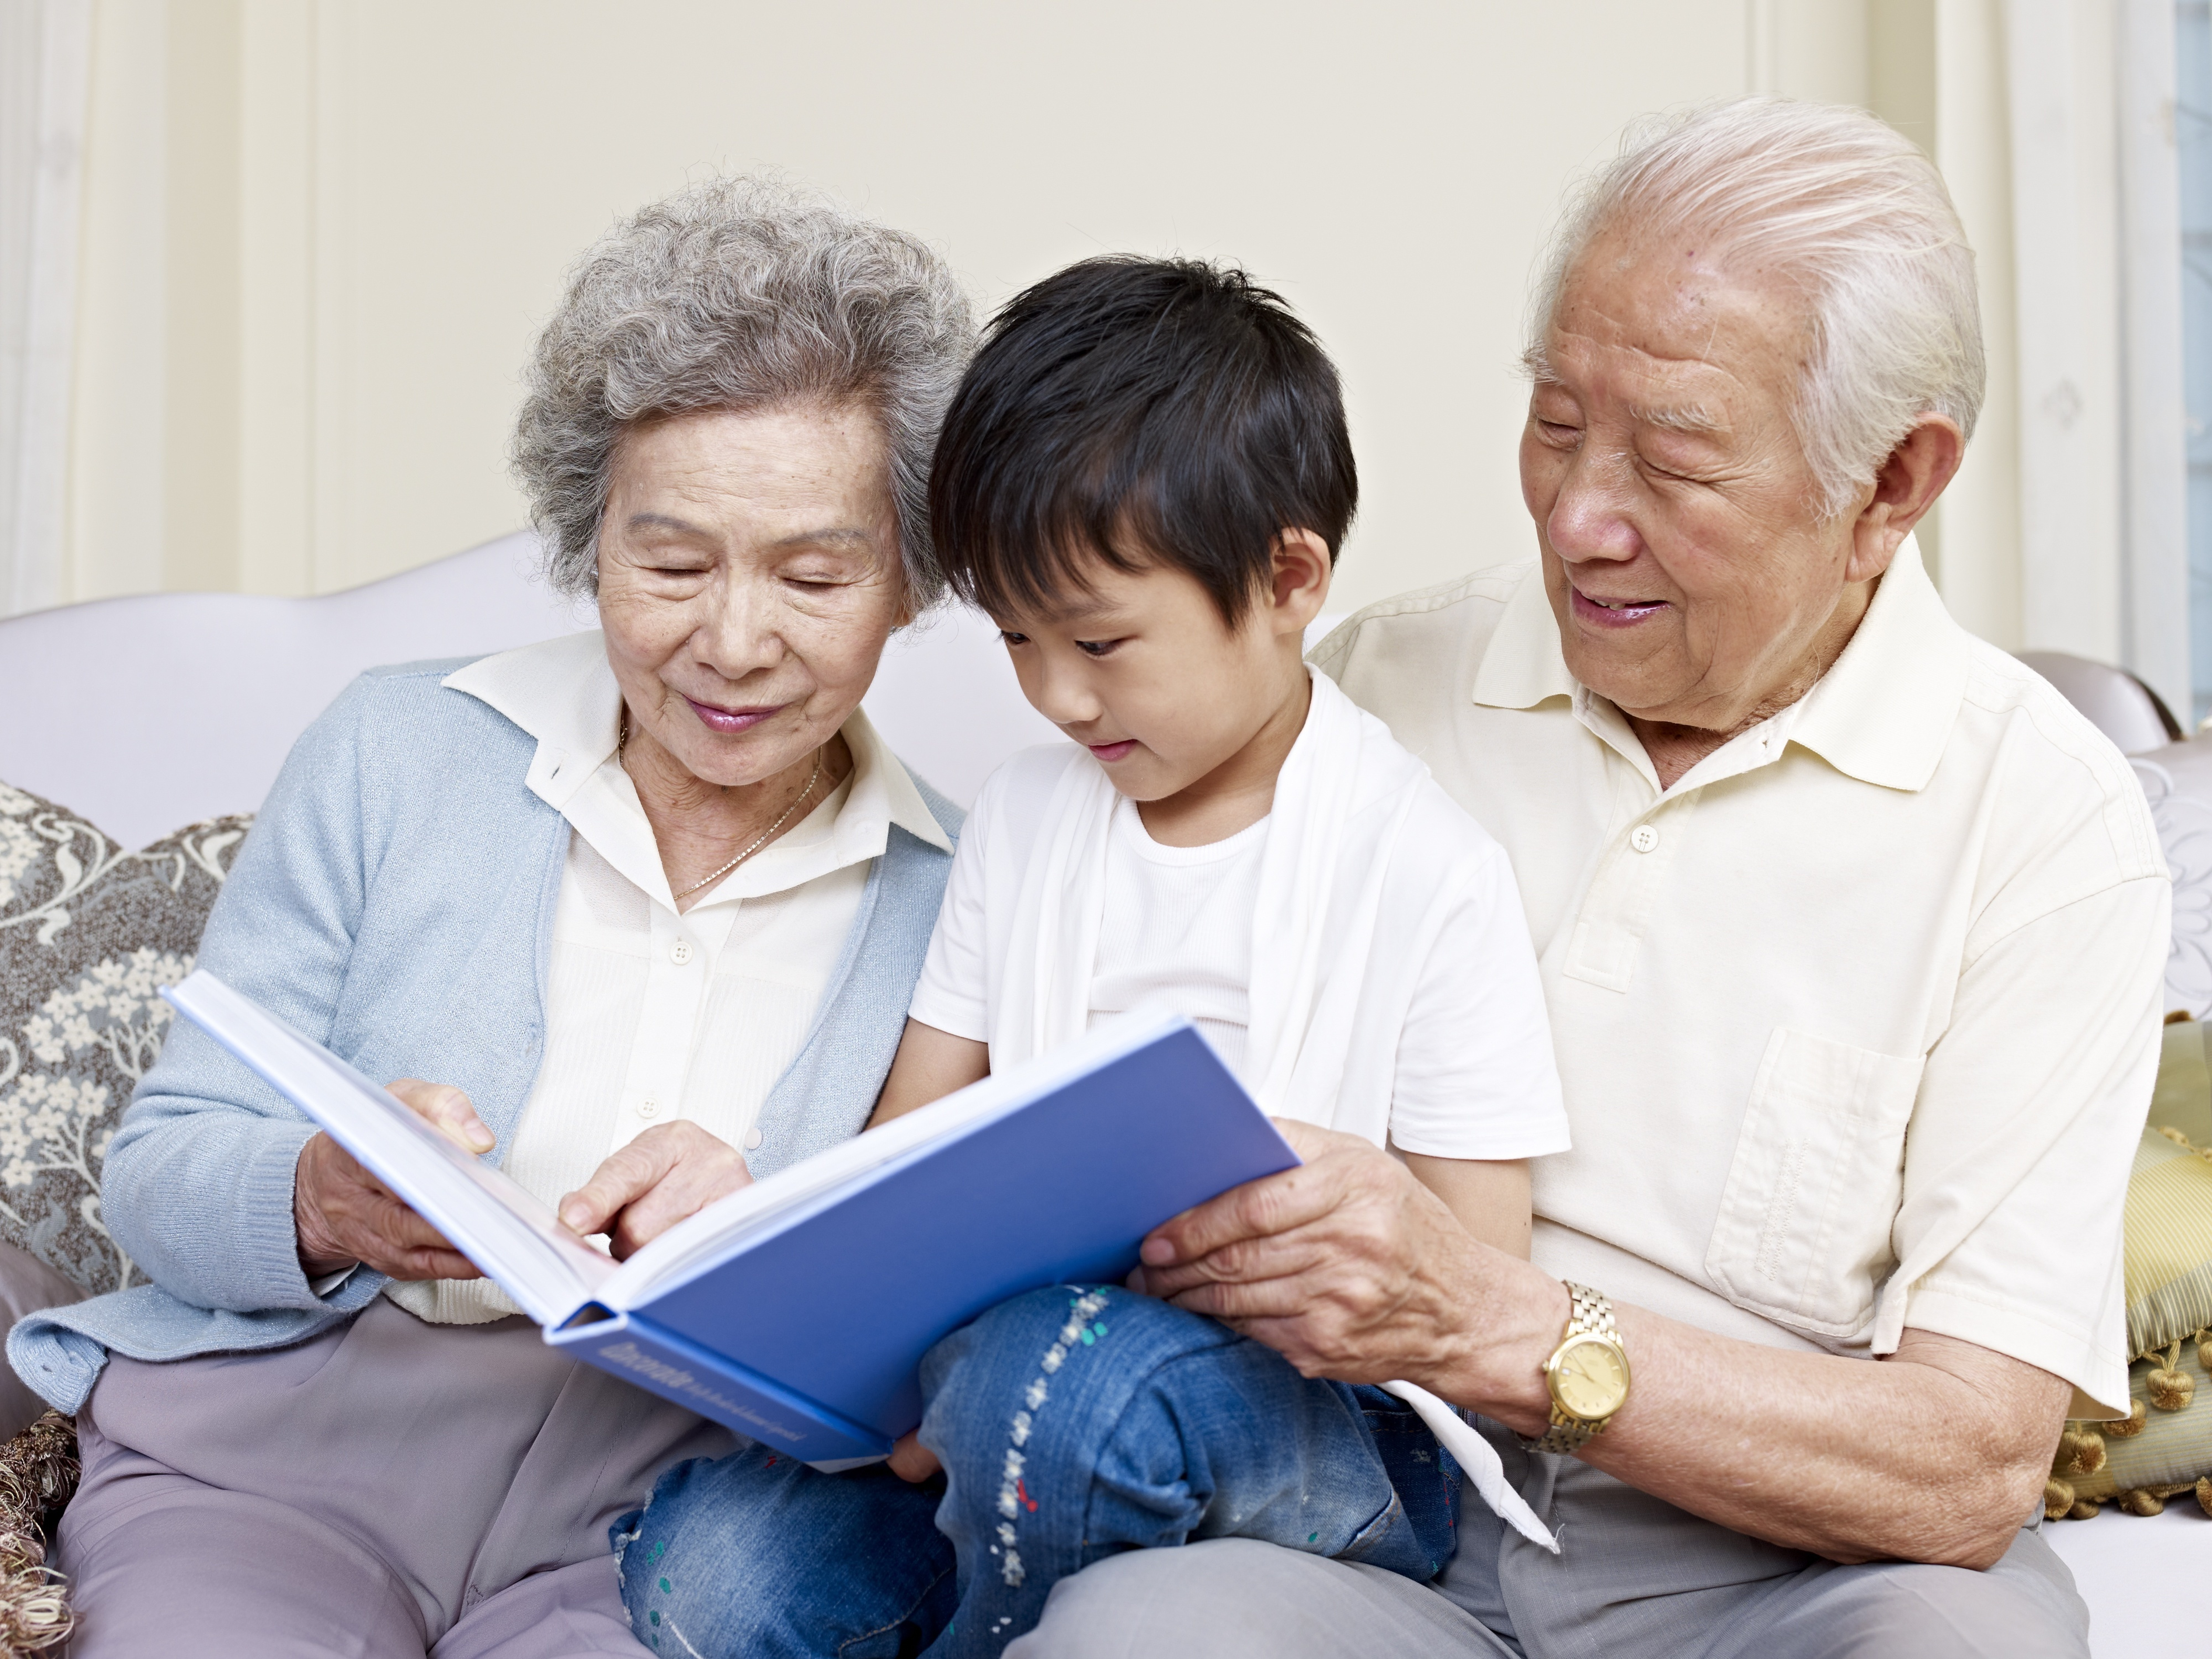 Grandparents and grandson reading a book together